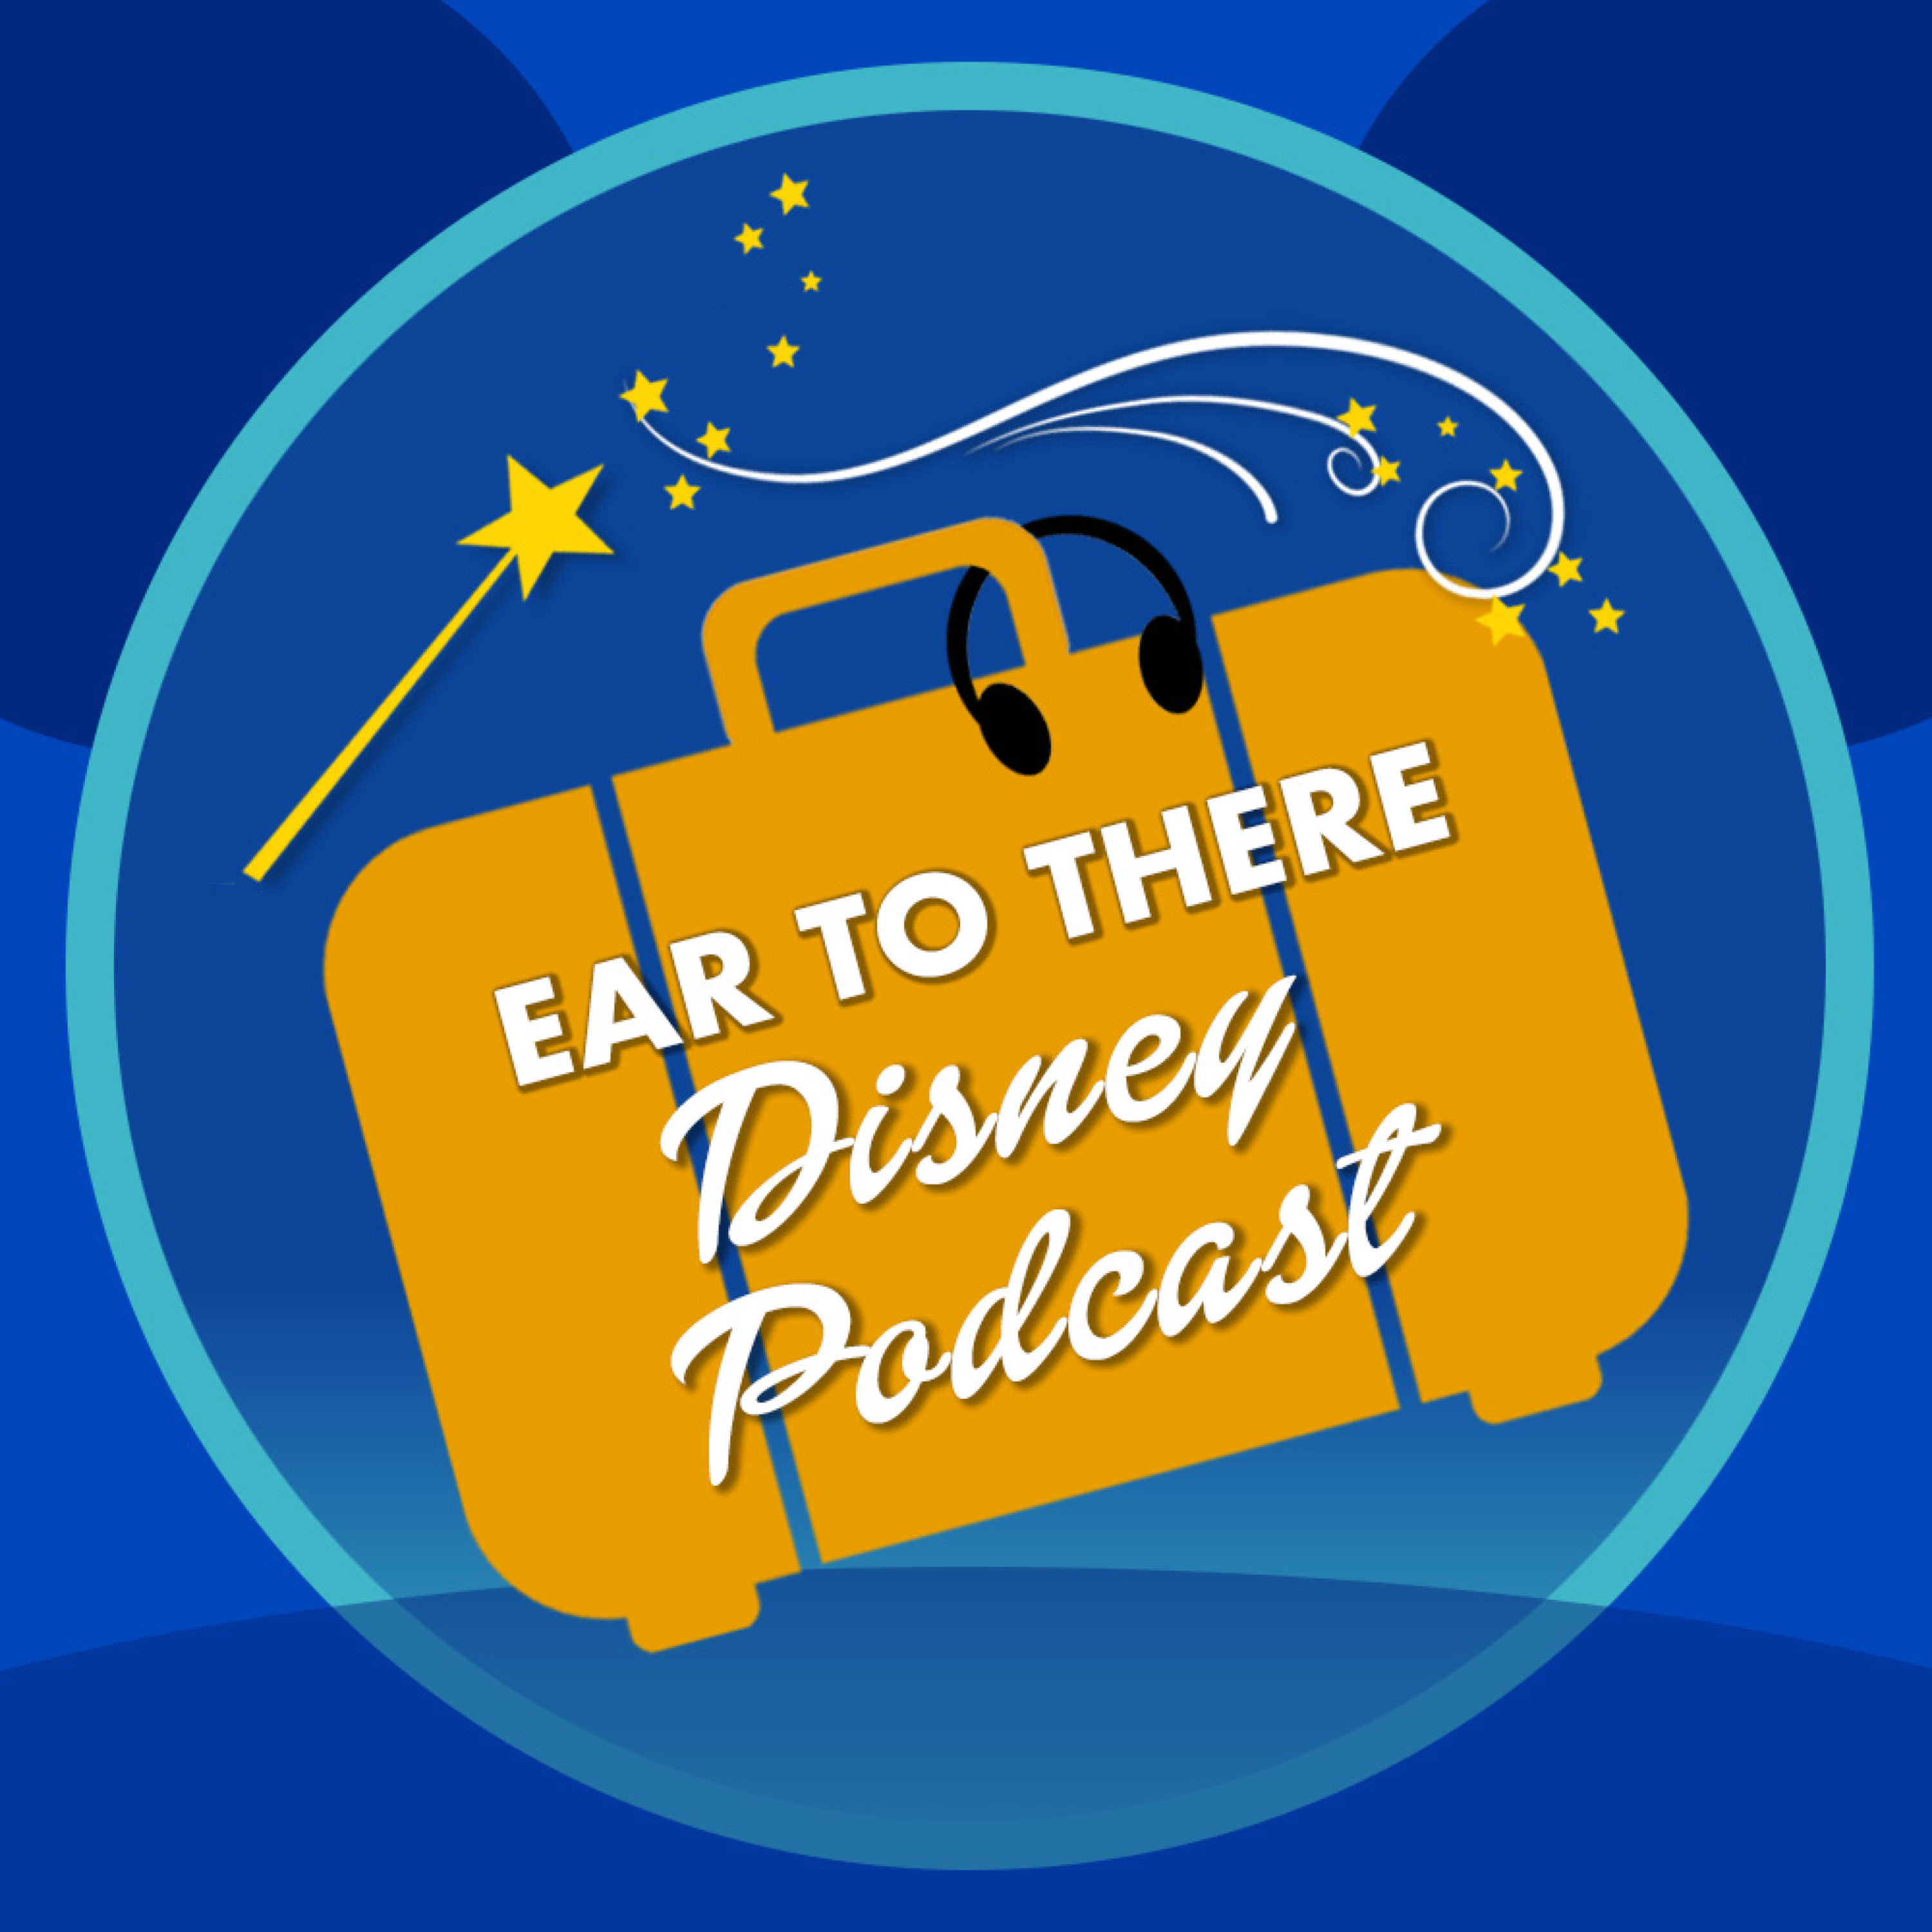 Ear To There Disney Podcast show art